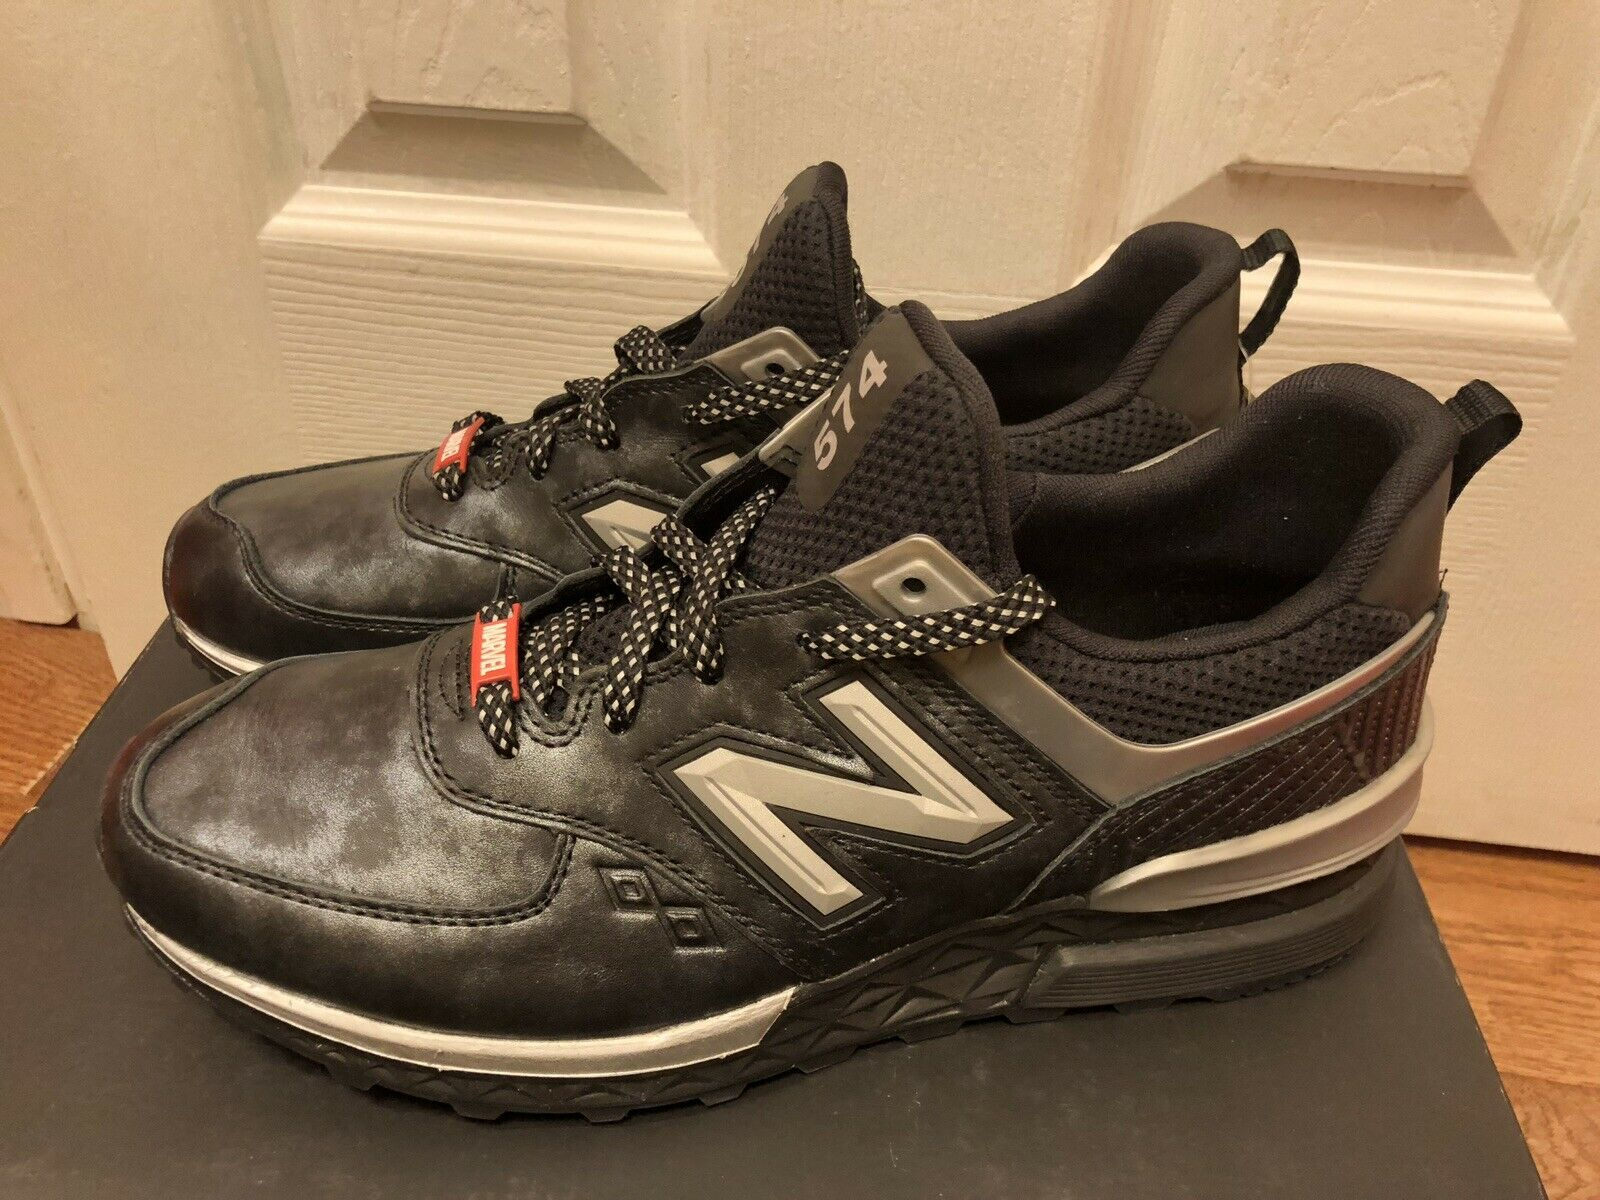 Marvel Negro Panther 574 Sport MS574BKP Zapatillas Zapatos para hombre New Balance NB